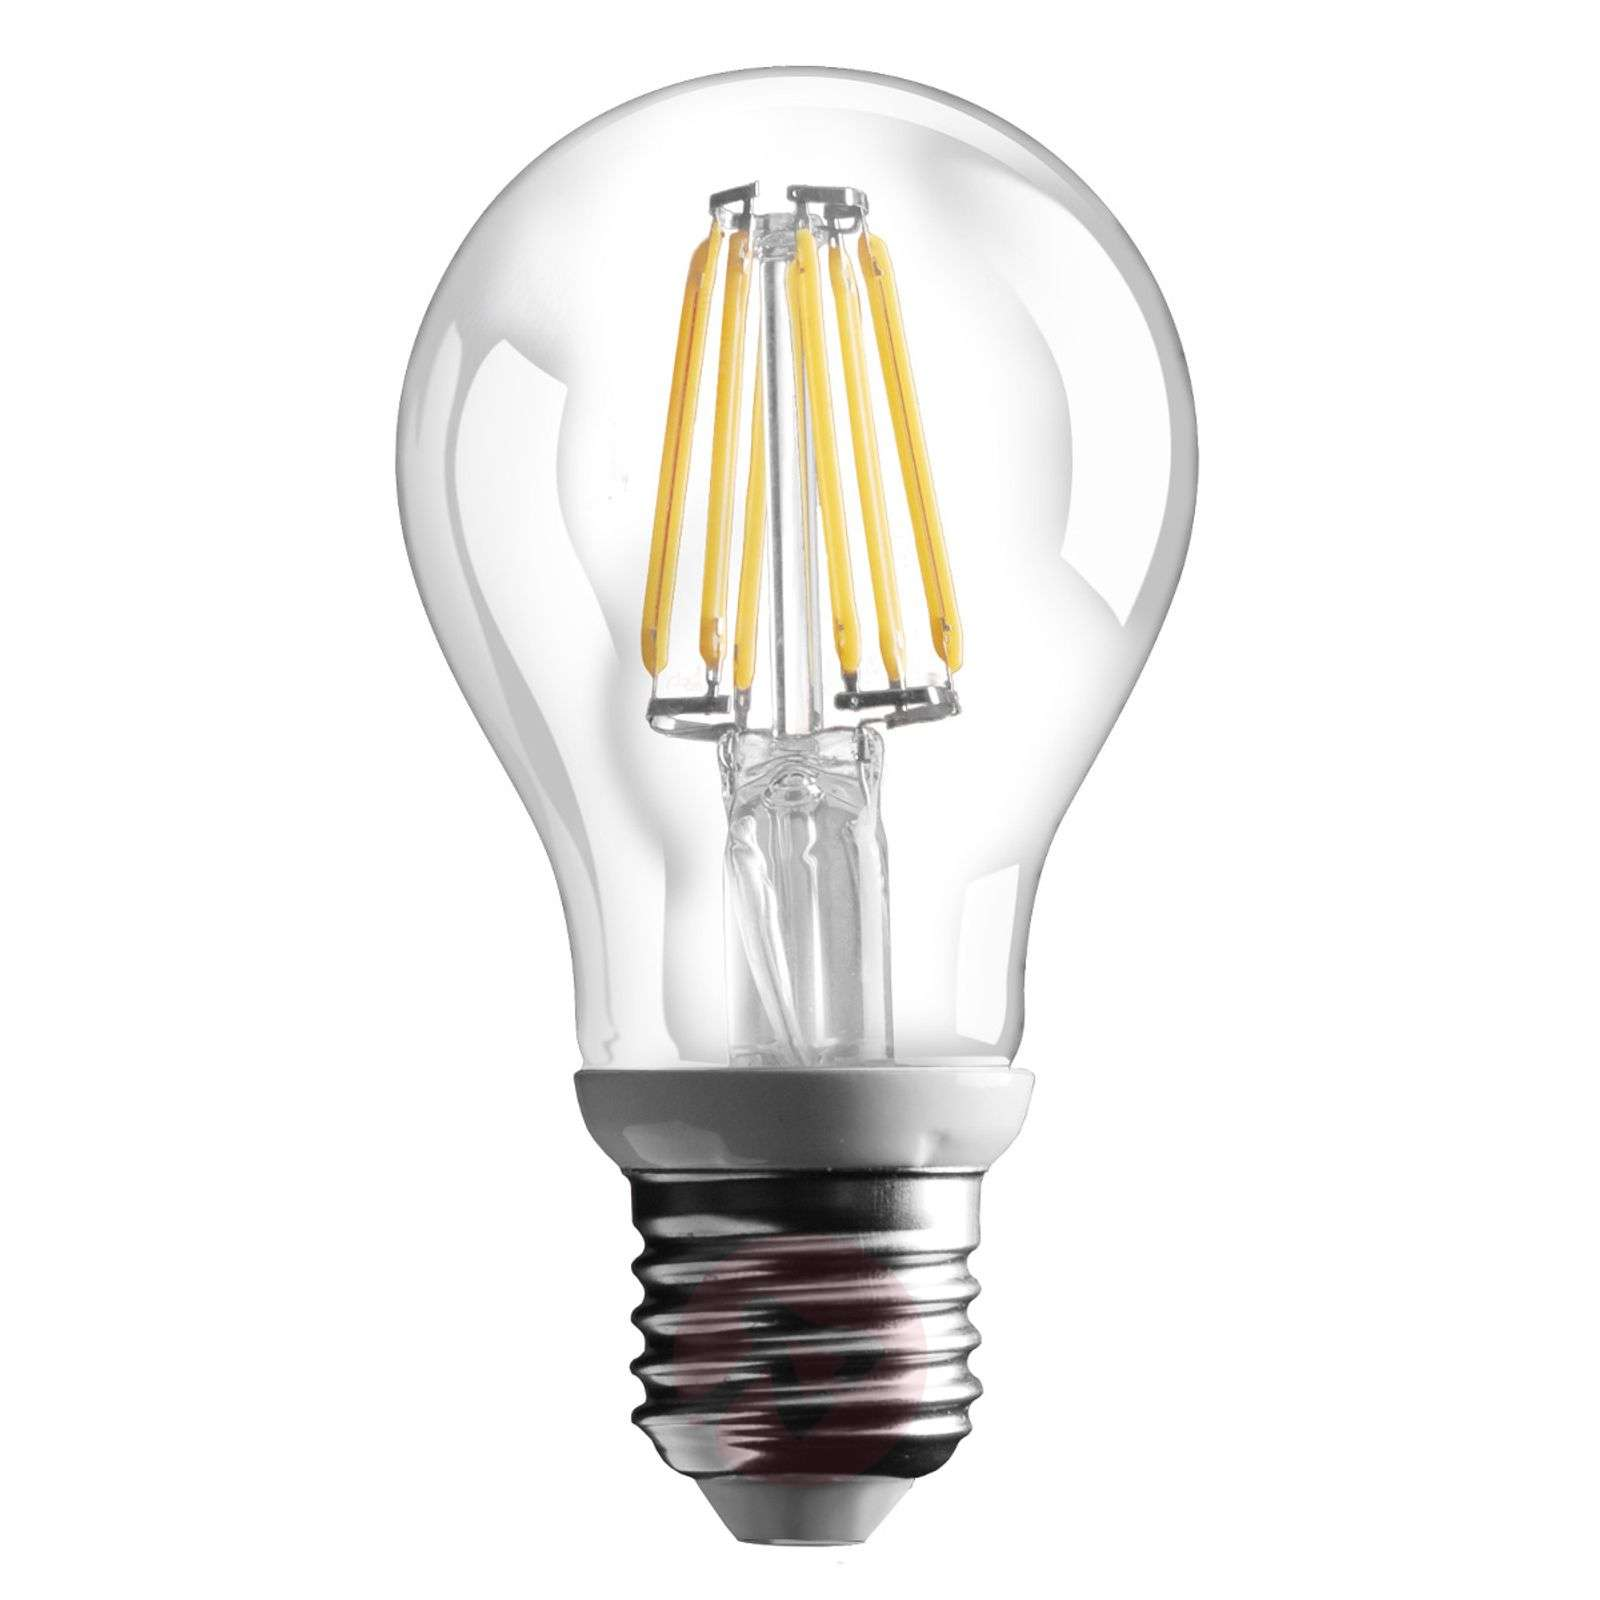 Lm Warm With W Lamp E27 6 800 Led Filament White Y7gbyf6v